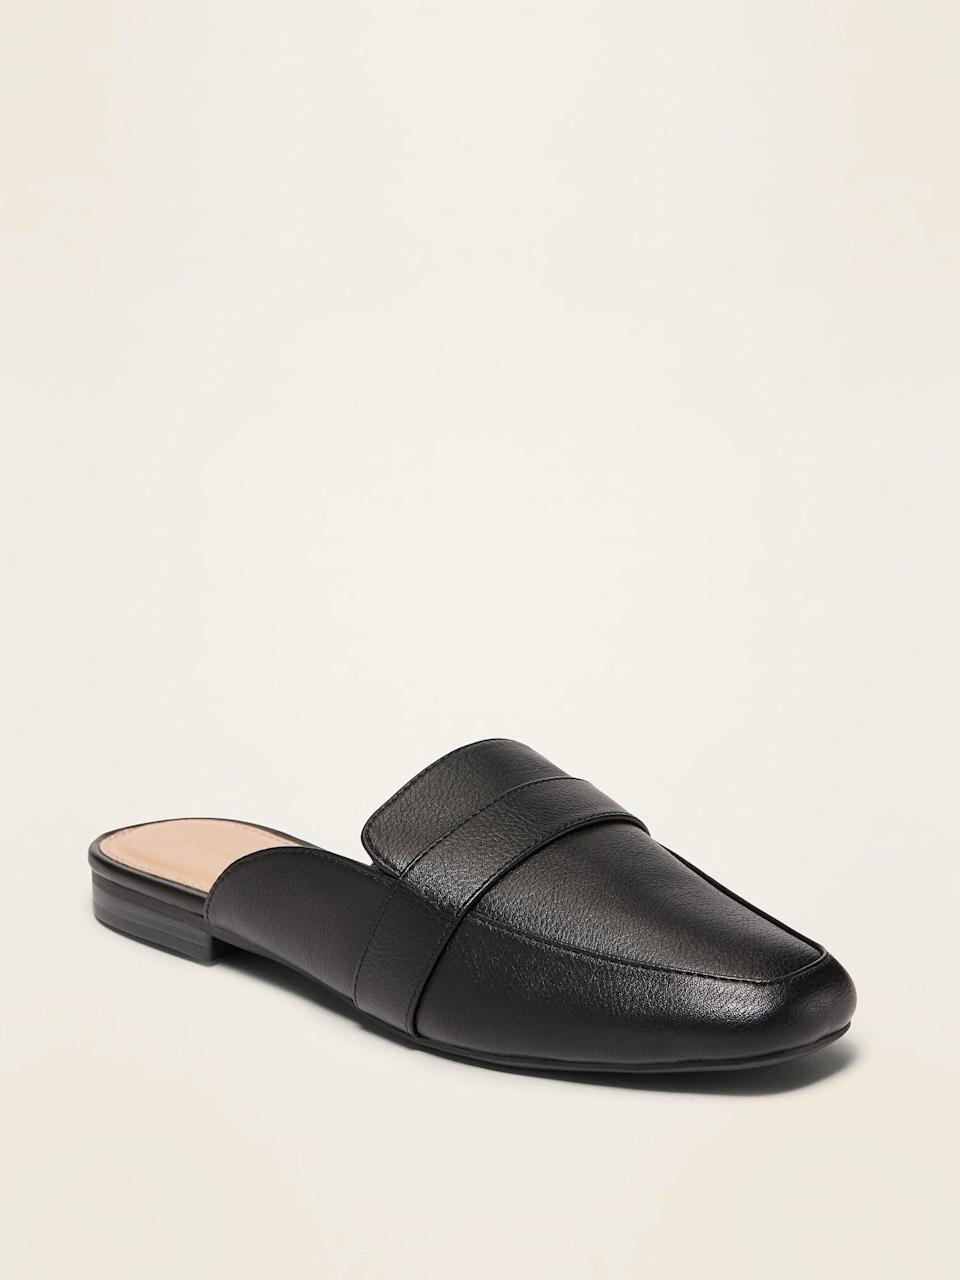 <p>These <span>Faux-Leather Driving Mules</span> ($26, originally $30) look sleek and comfortable.</p>